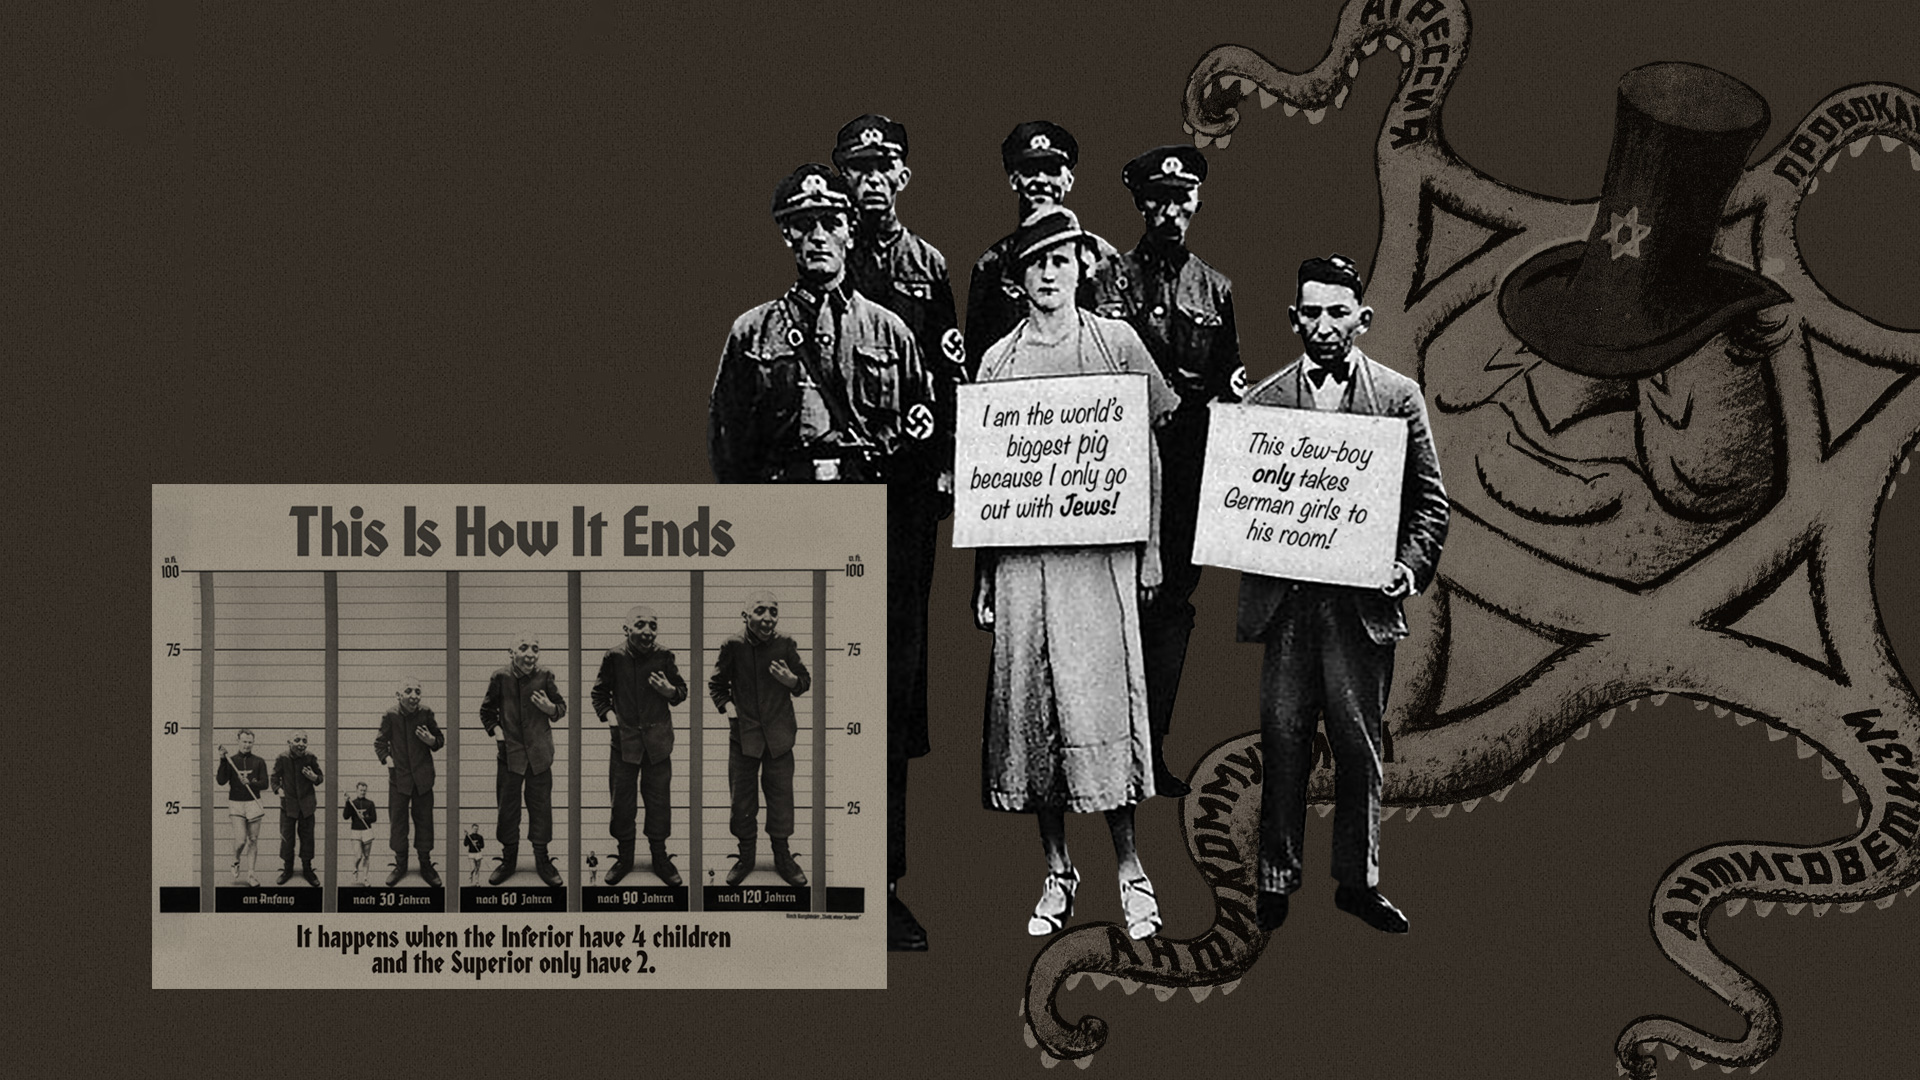 No equal rights for Jews leading up to the Holocaust